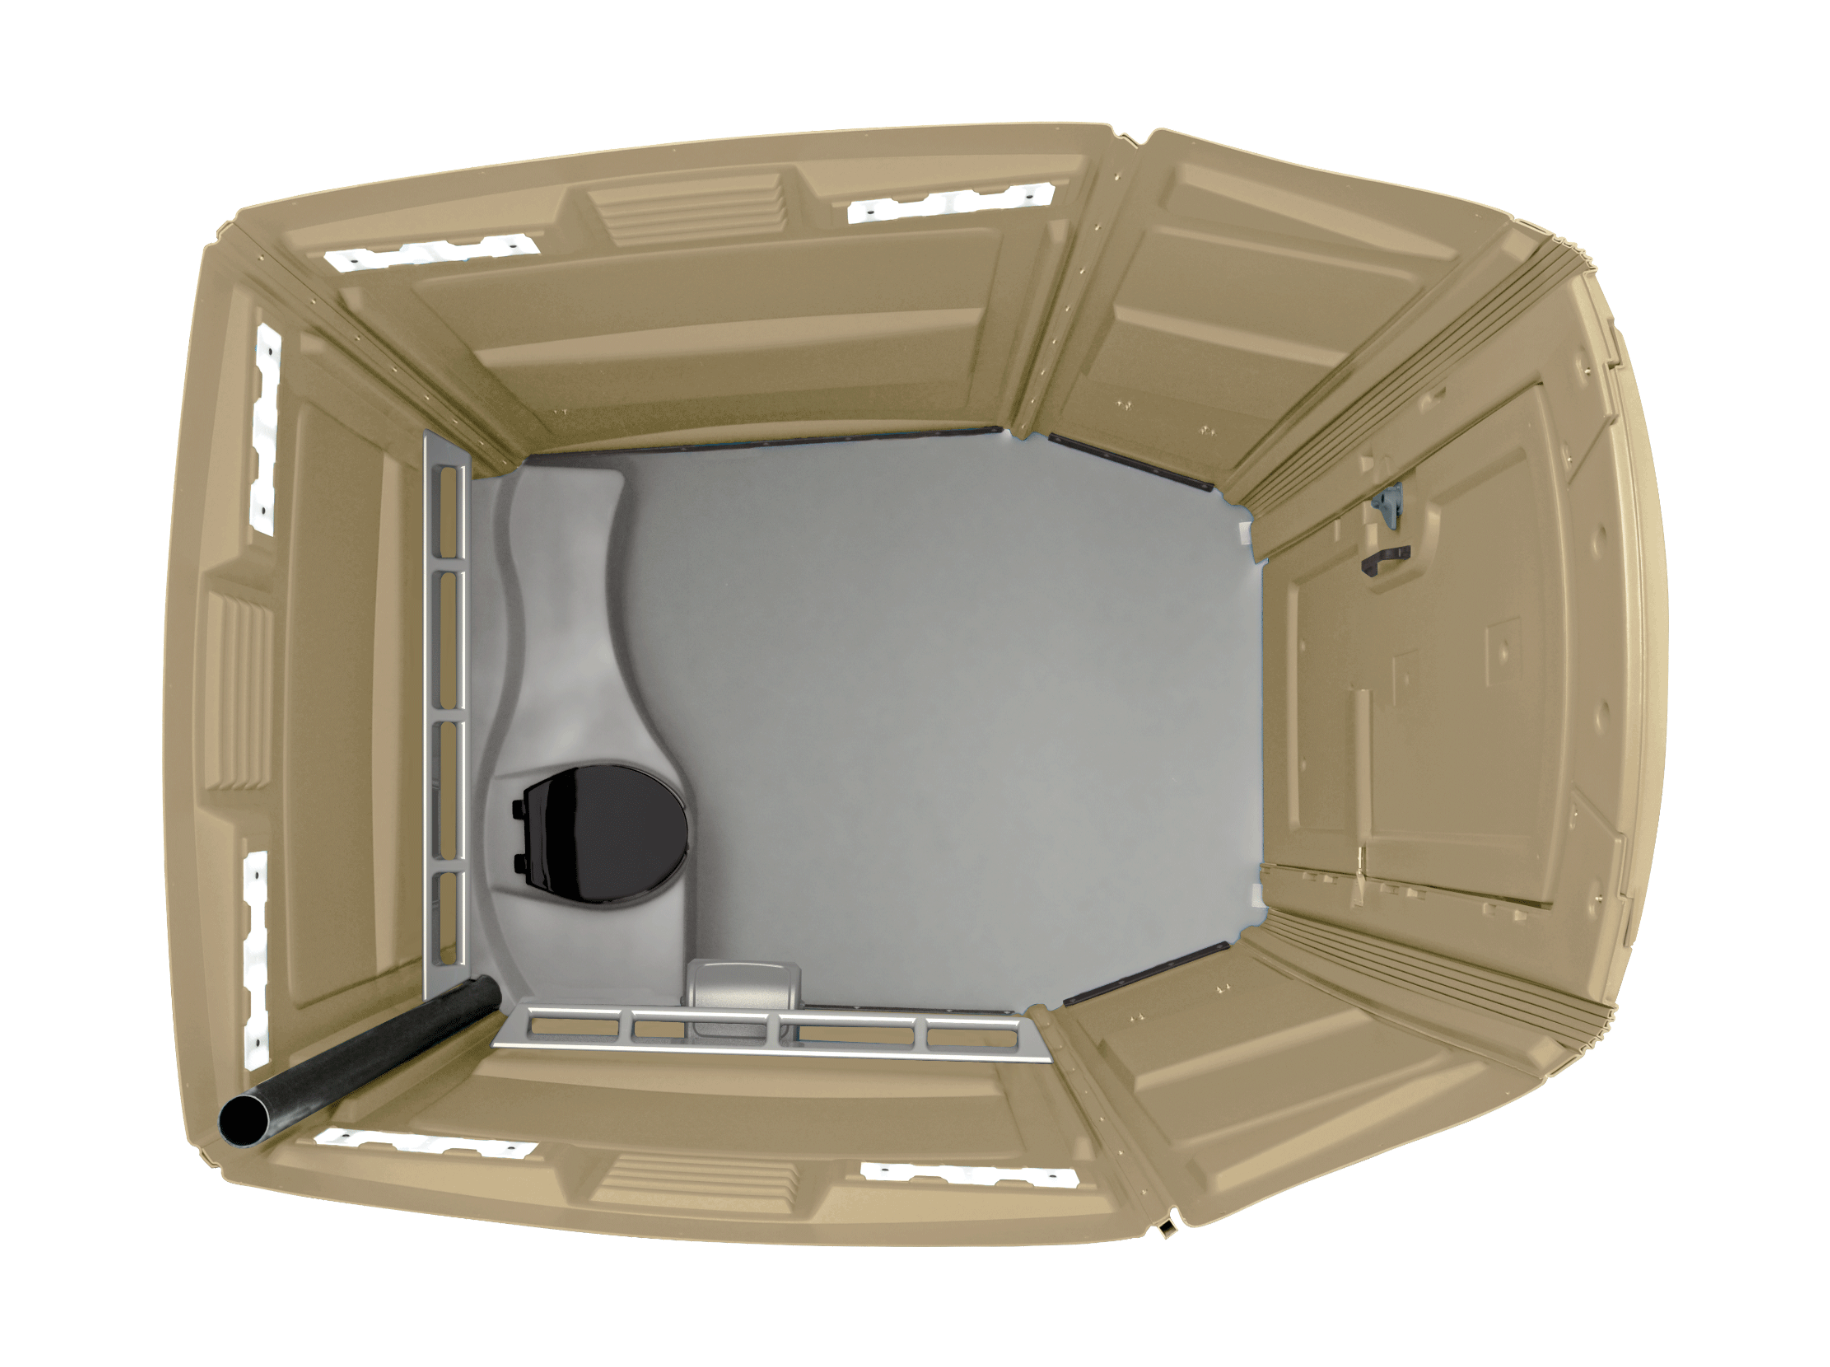 Portable Boat Toilet : Ada compliant portable toilets texas outhouse